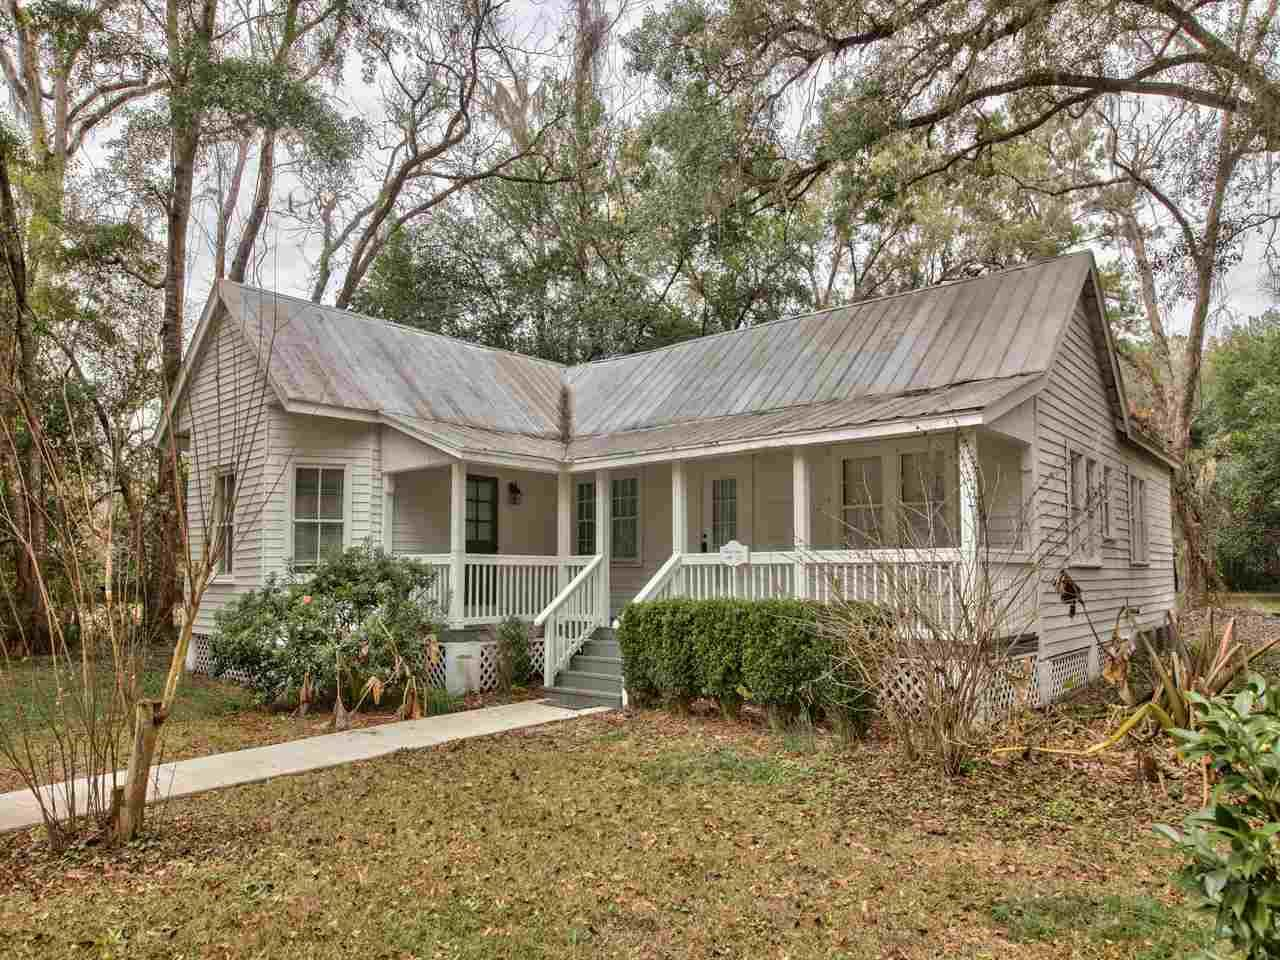 Photo of 8948 Old Lloyd Road, MONTICELLO, FL 32344 (MLS # 327678)